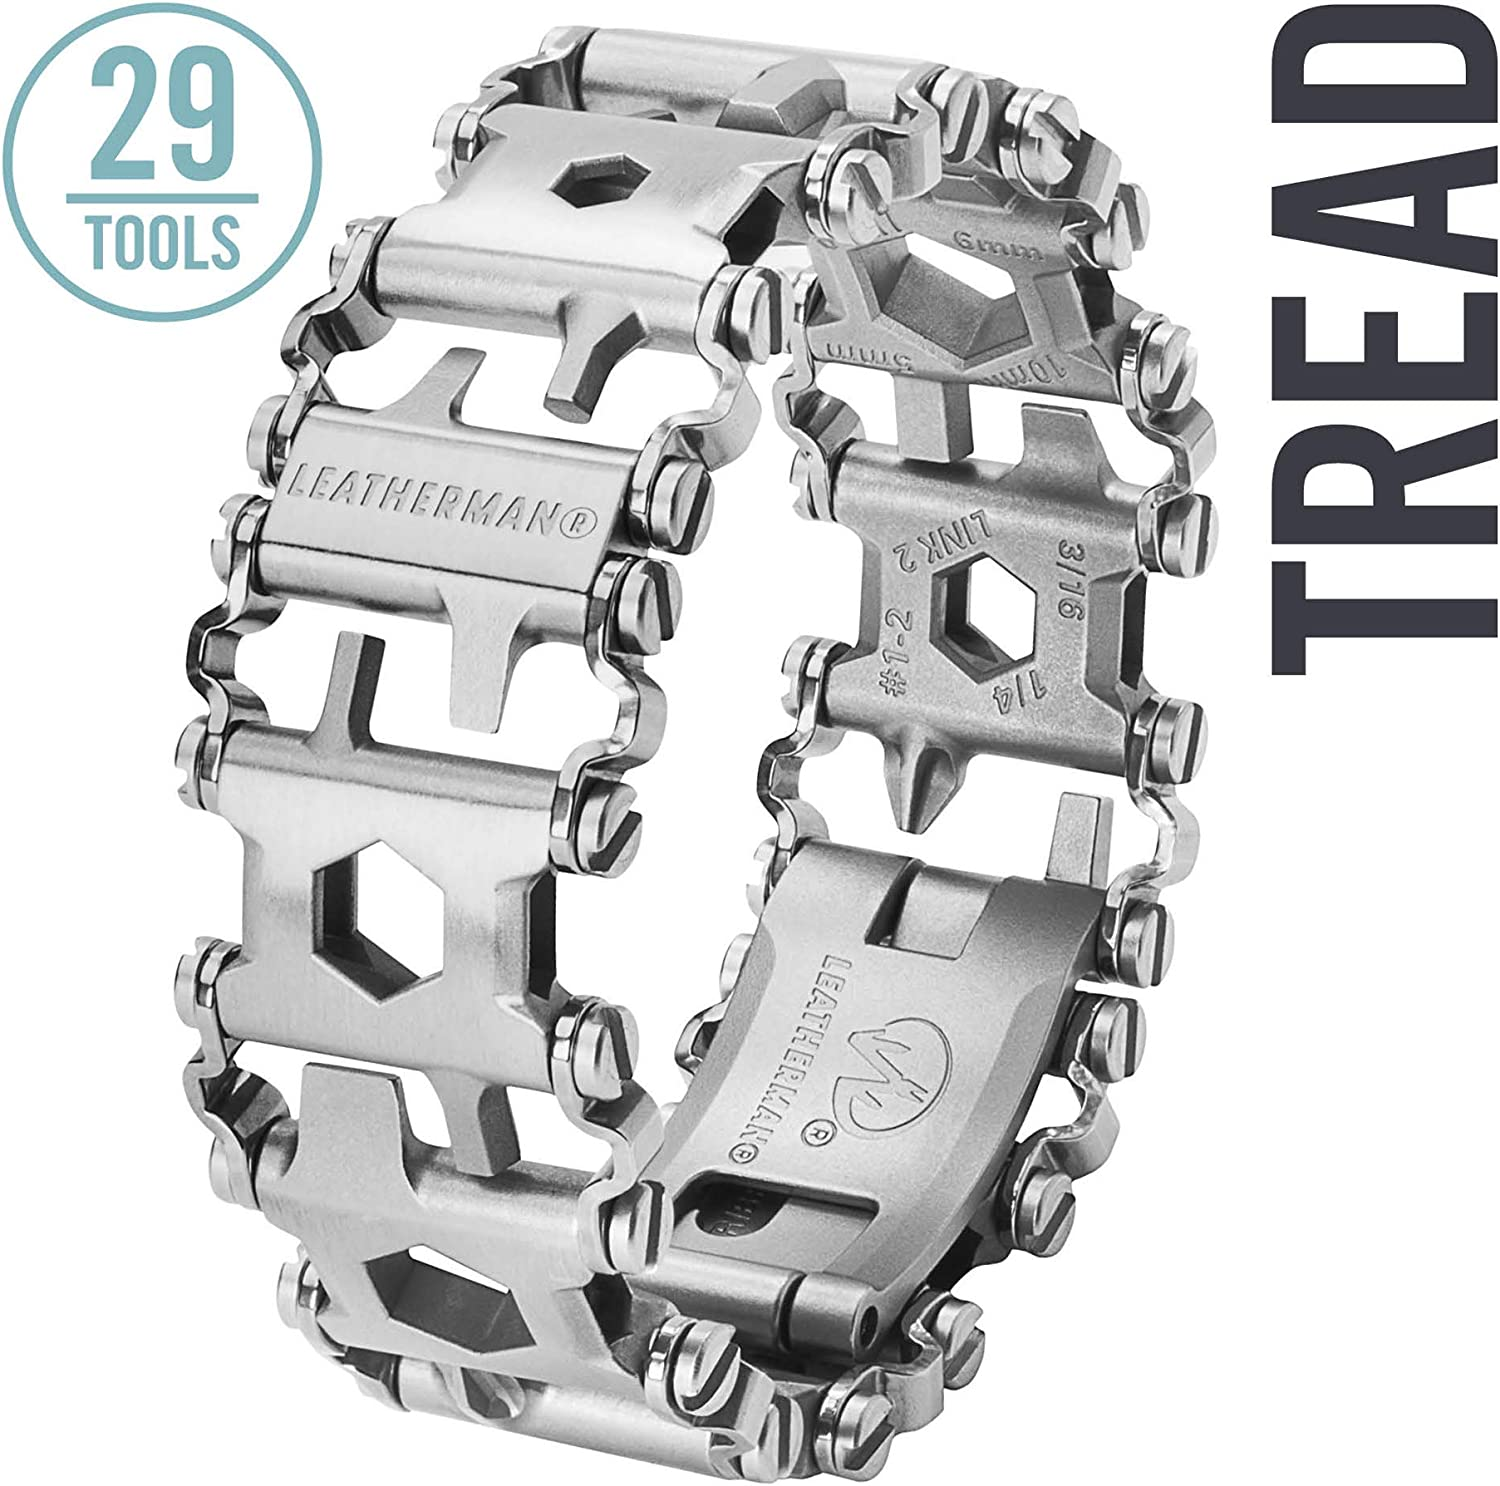 LEATHERMAN – Tread Bracelet, The Original Travel Friendly Wearable Multitool, Stainless Steel